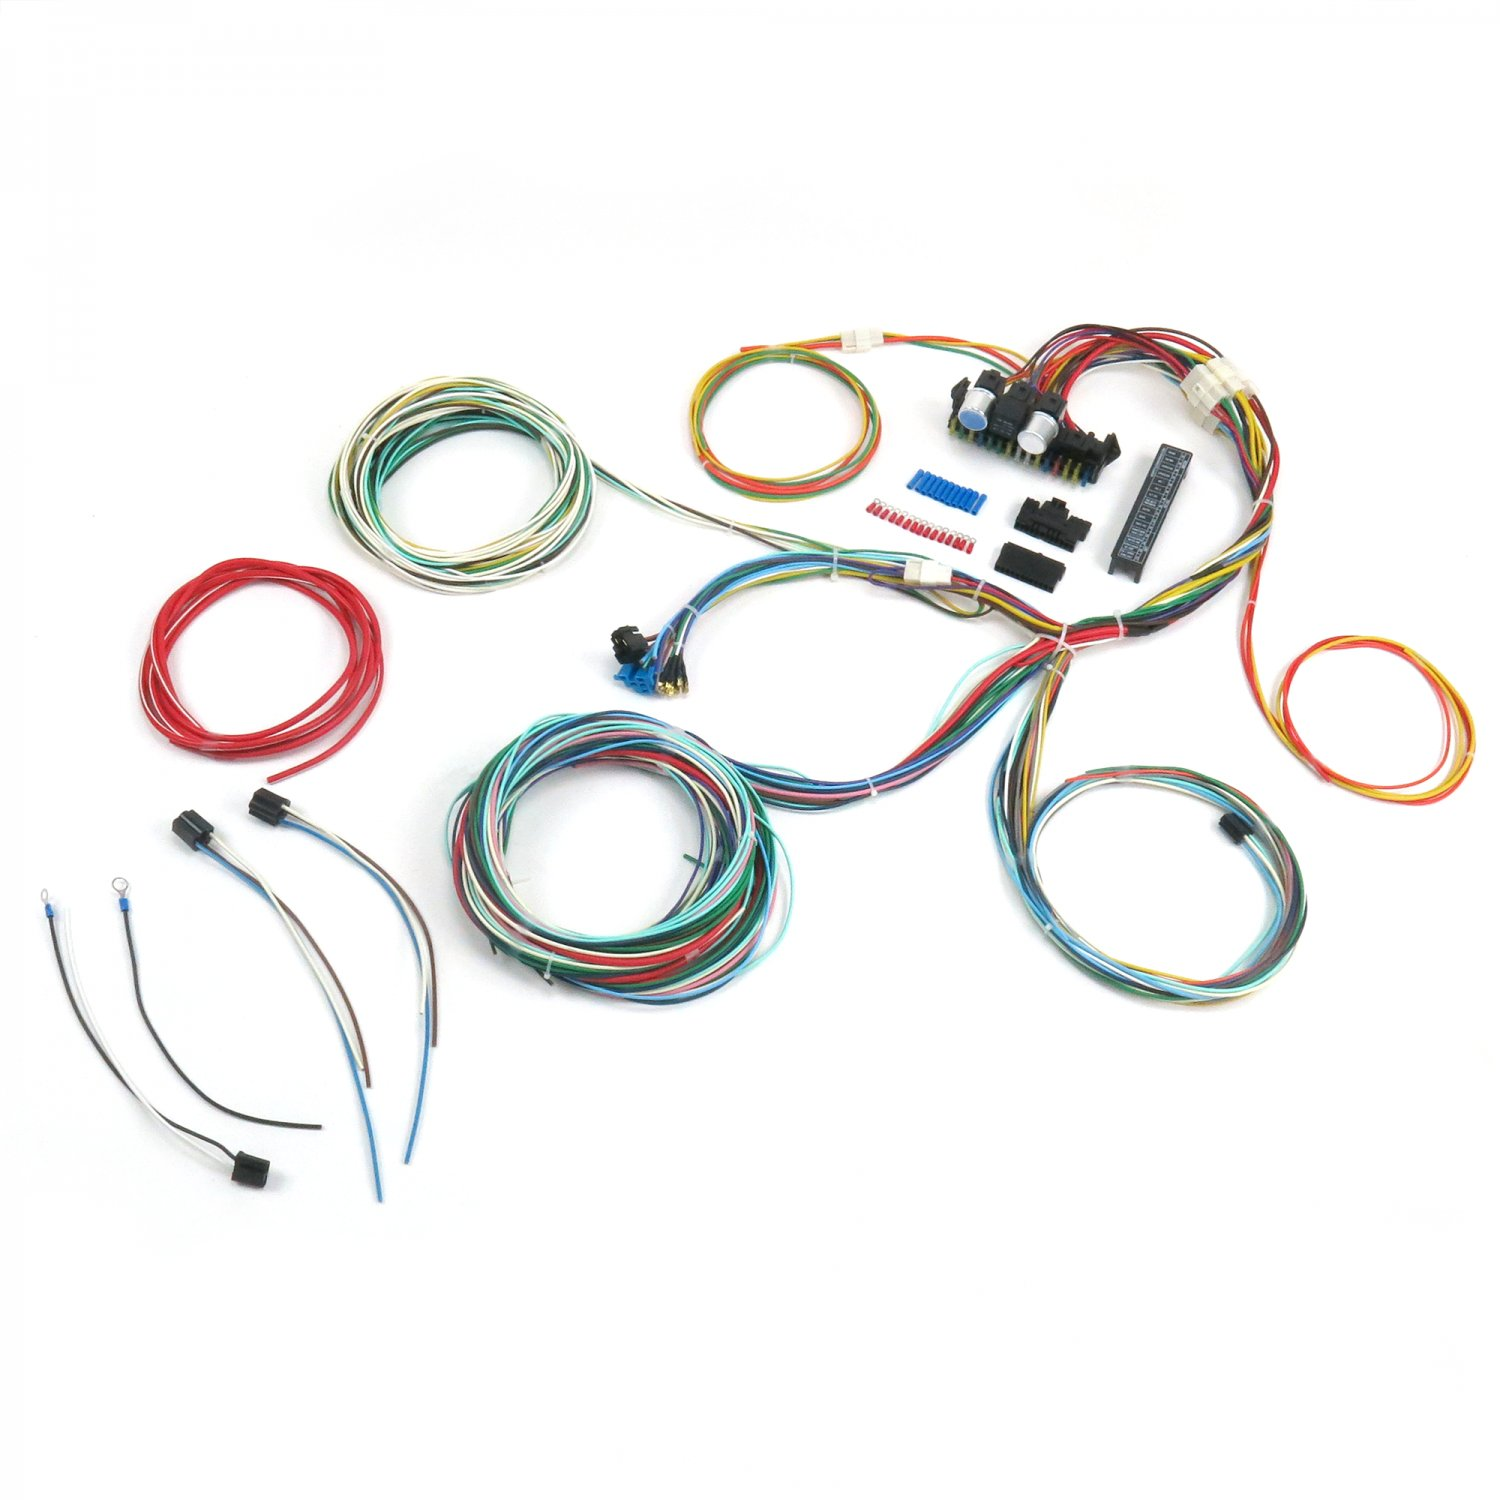 hight resolution of details about ultimate 15 fuse 12v conversion wiring harness 40 1940 ford pickup rod